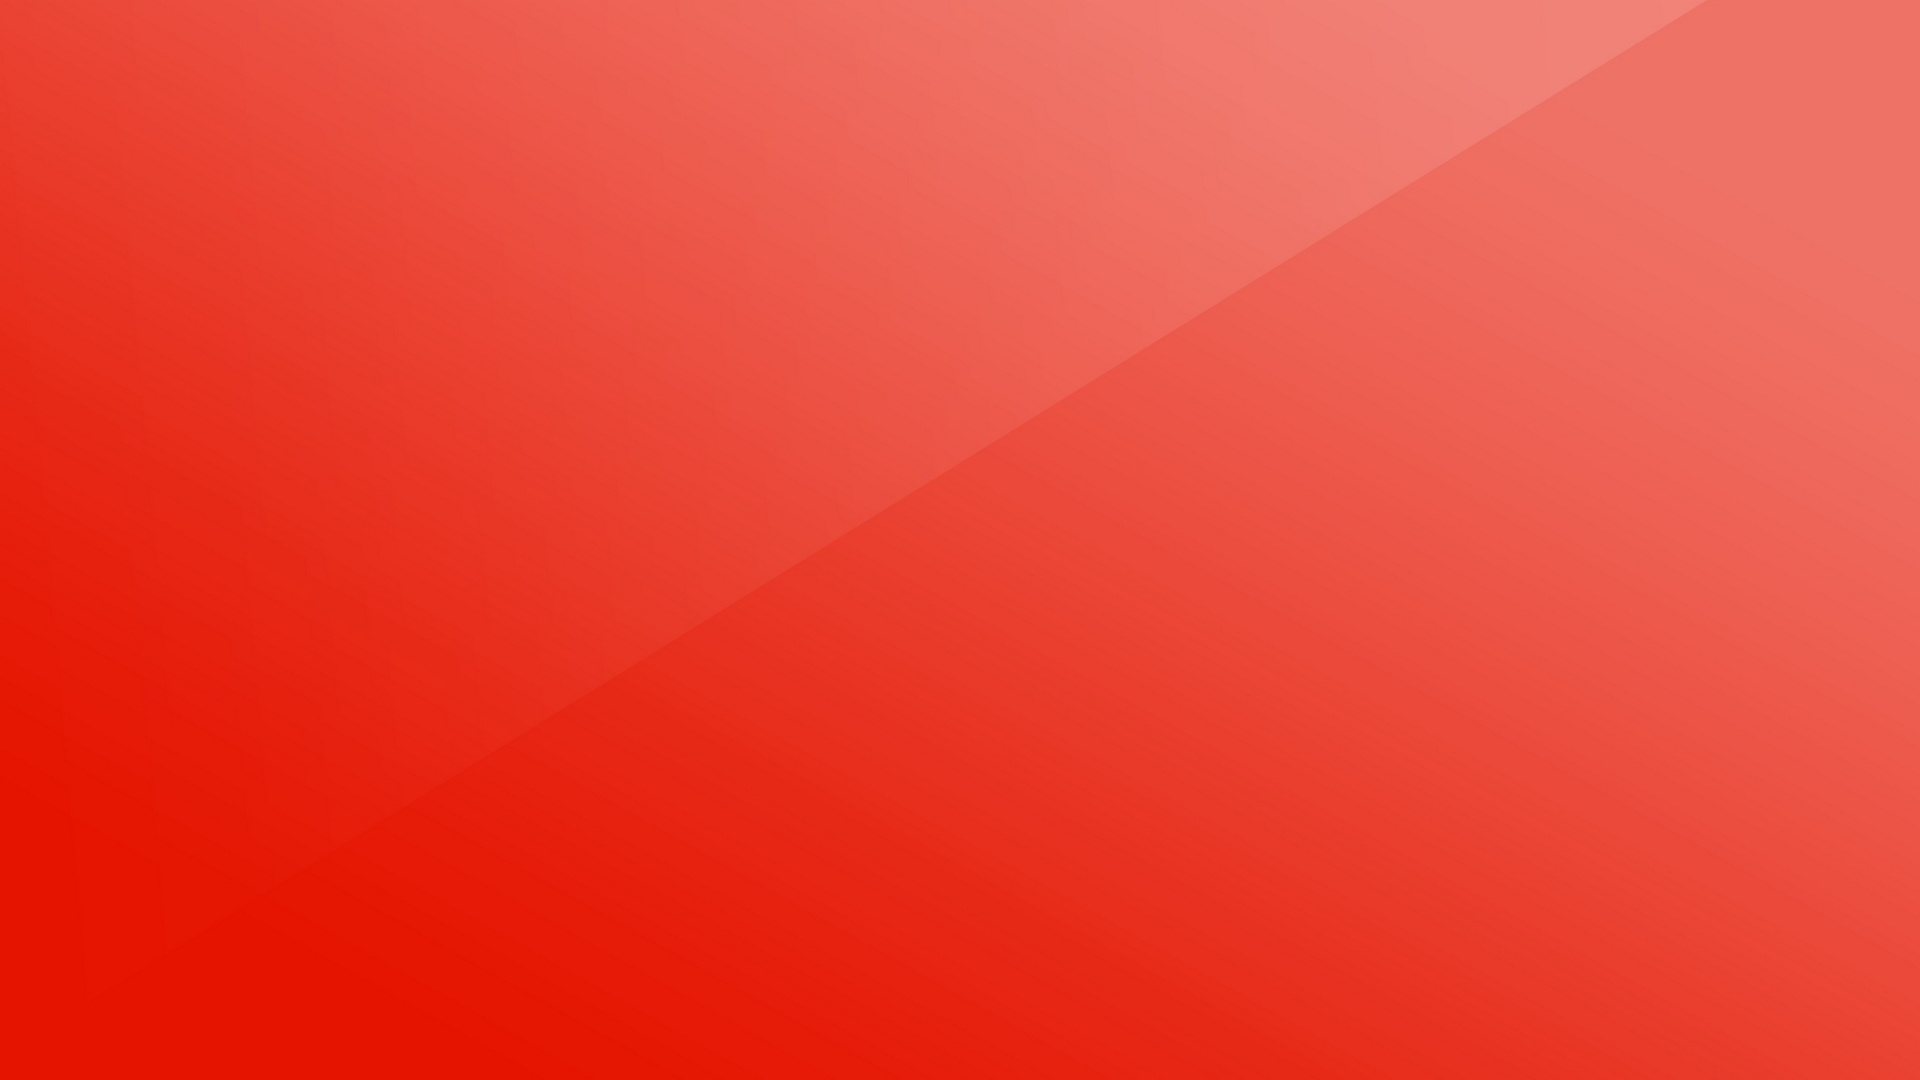 Solid Red full hd 1080p wallpaper